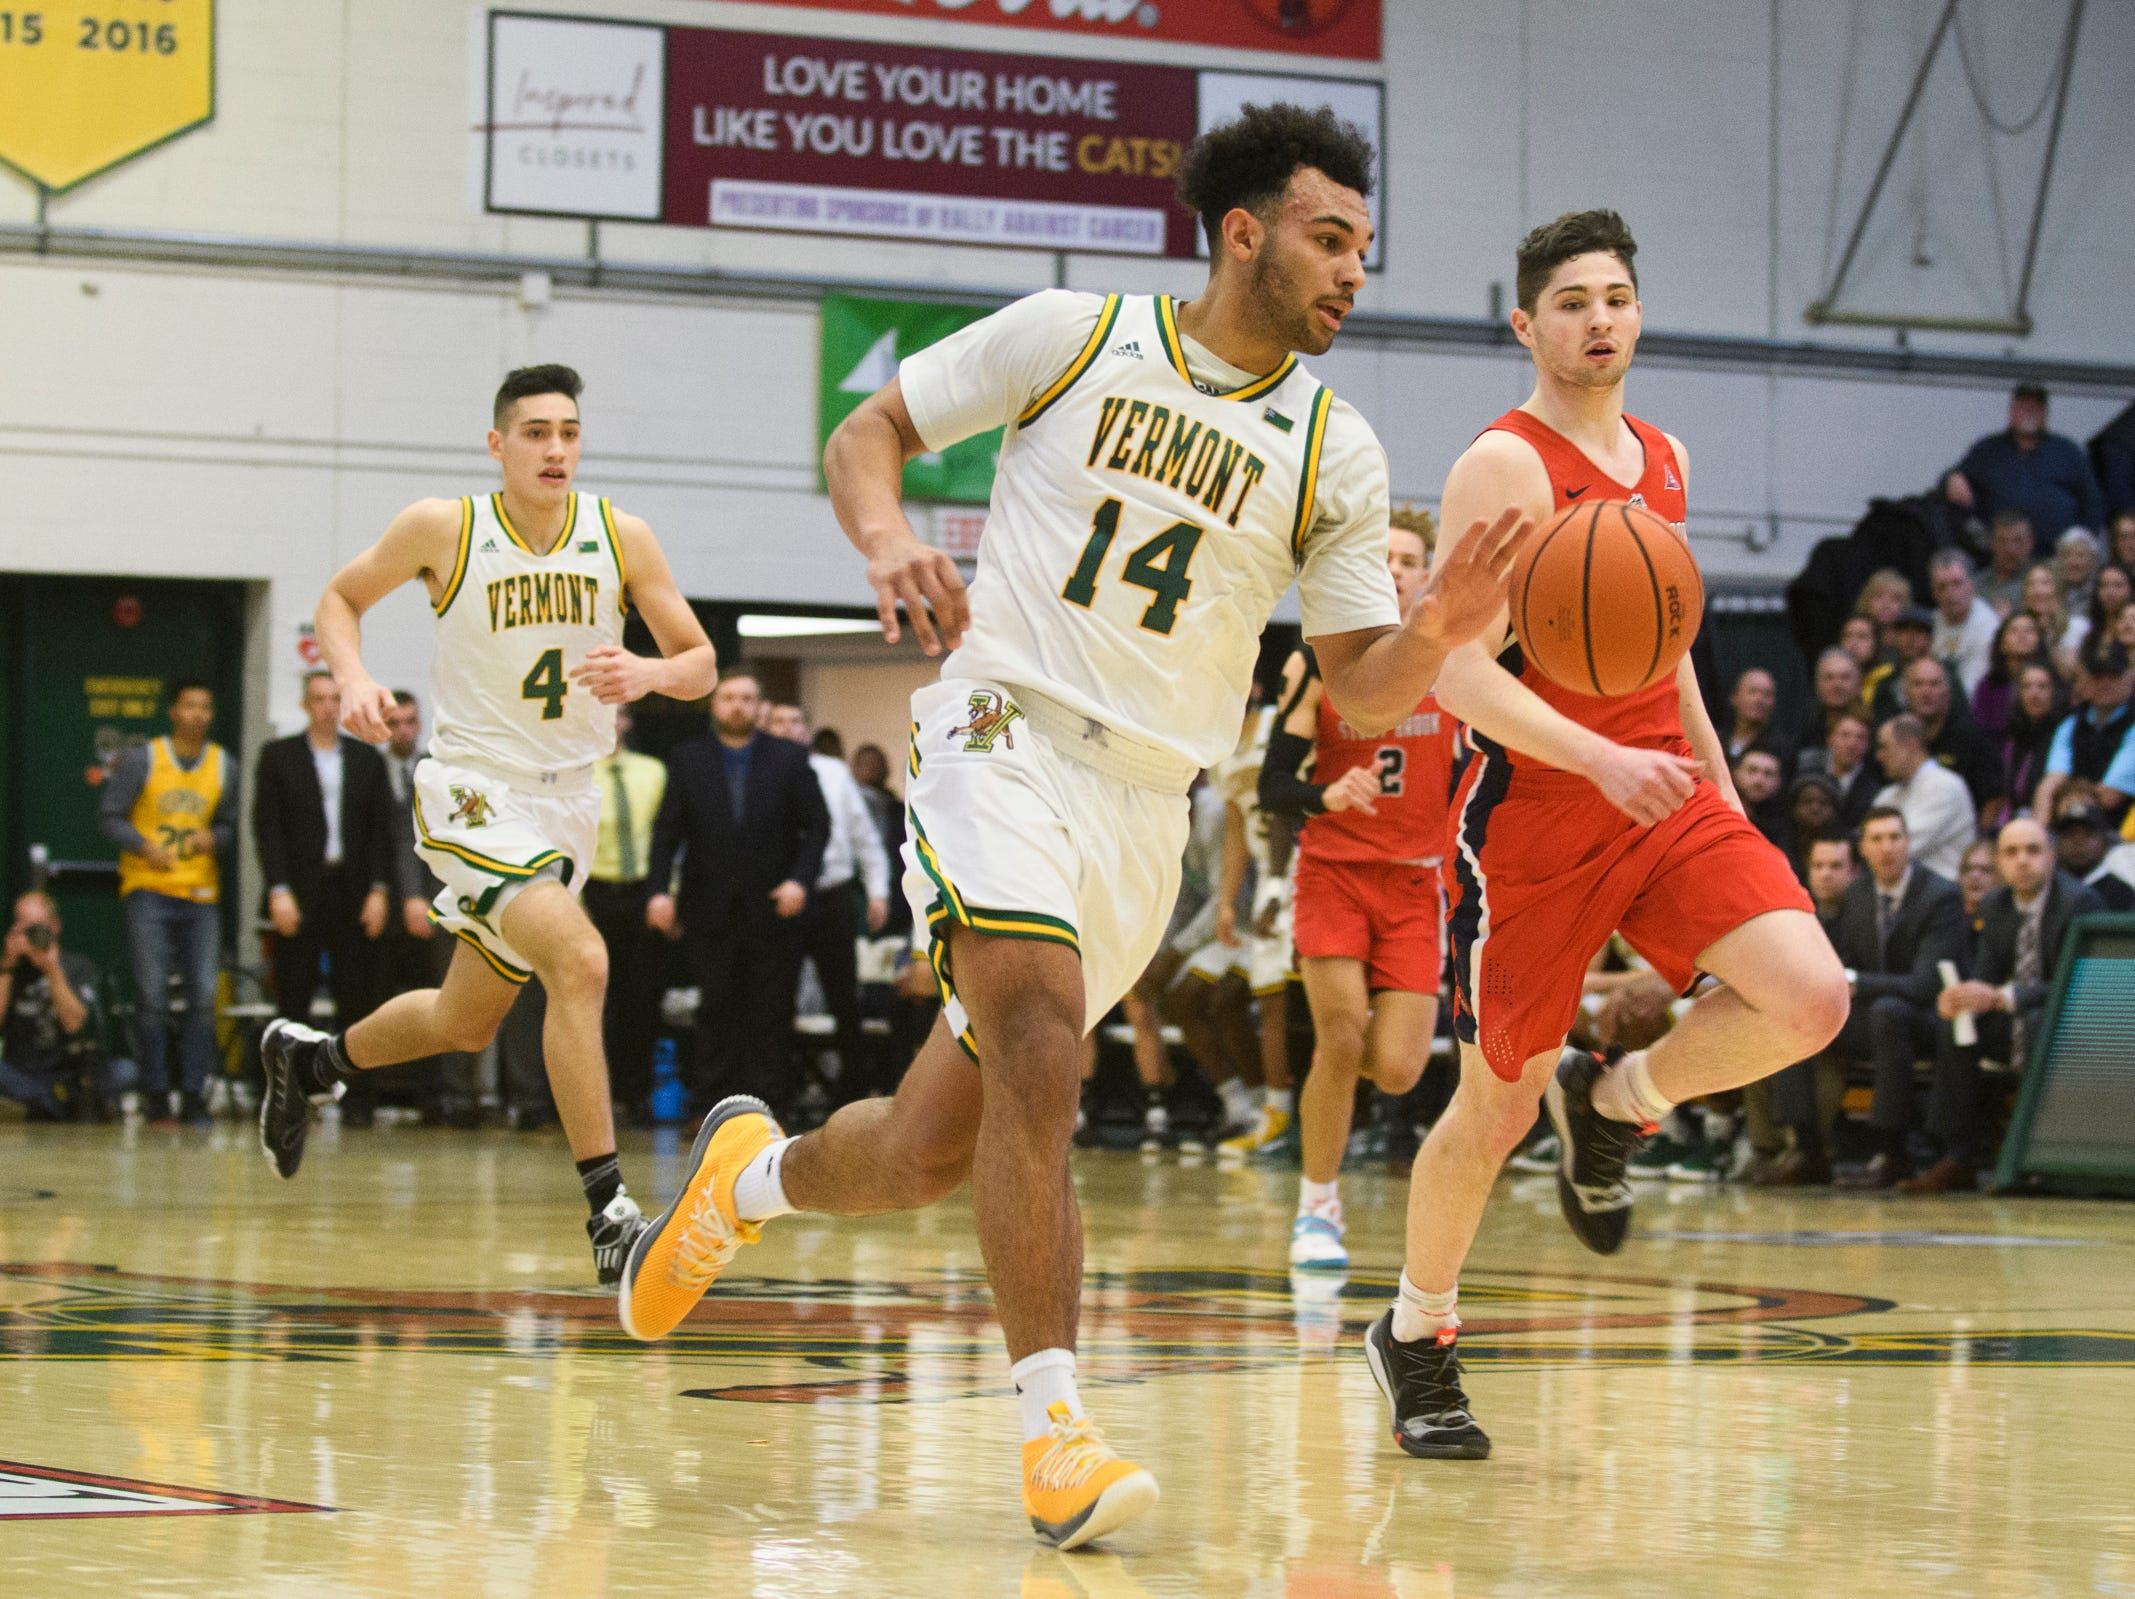 Vermont forward Isaiah Moll (14) drives to the hoop during the men's basketball game between the Stony Brook Seawolves and the Vermont Catamounts at Patrick Gym on Saturday night March 2, 2019 in Burlington, Vermont.